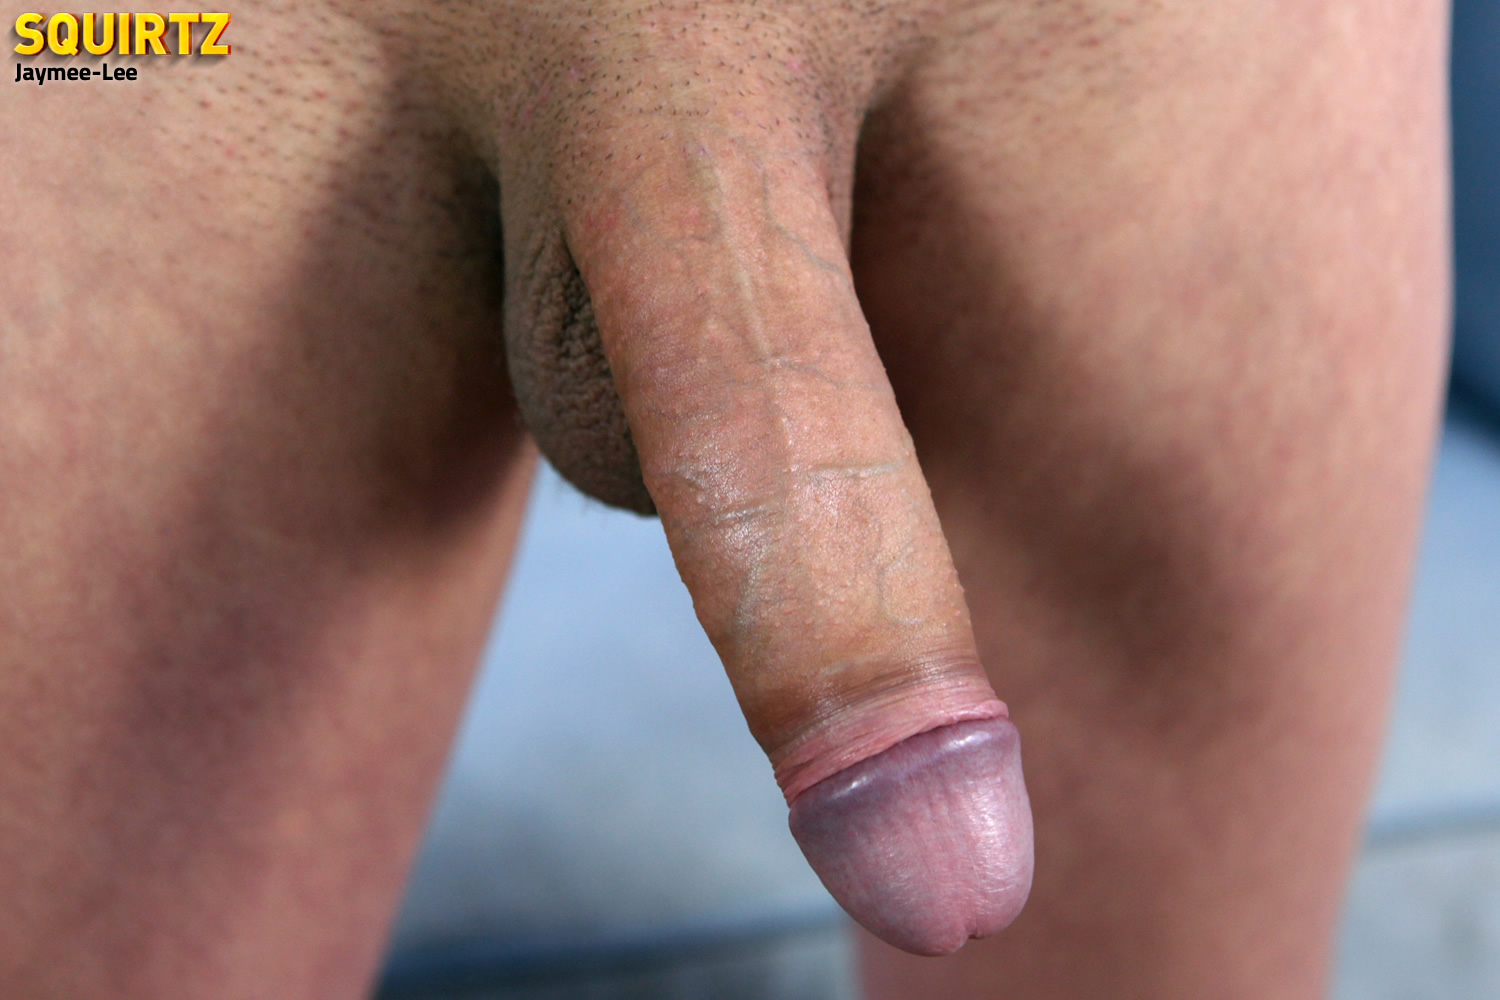 Heaven tbh uncut amateur cock would